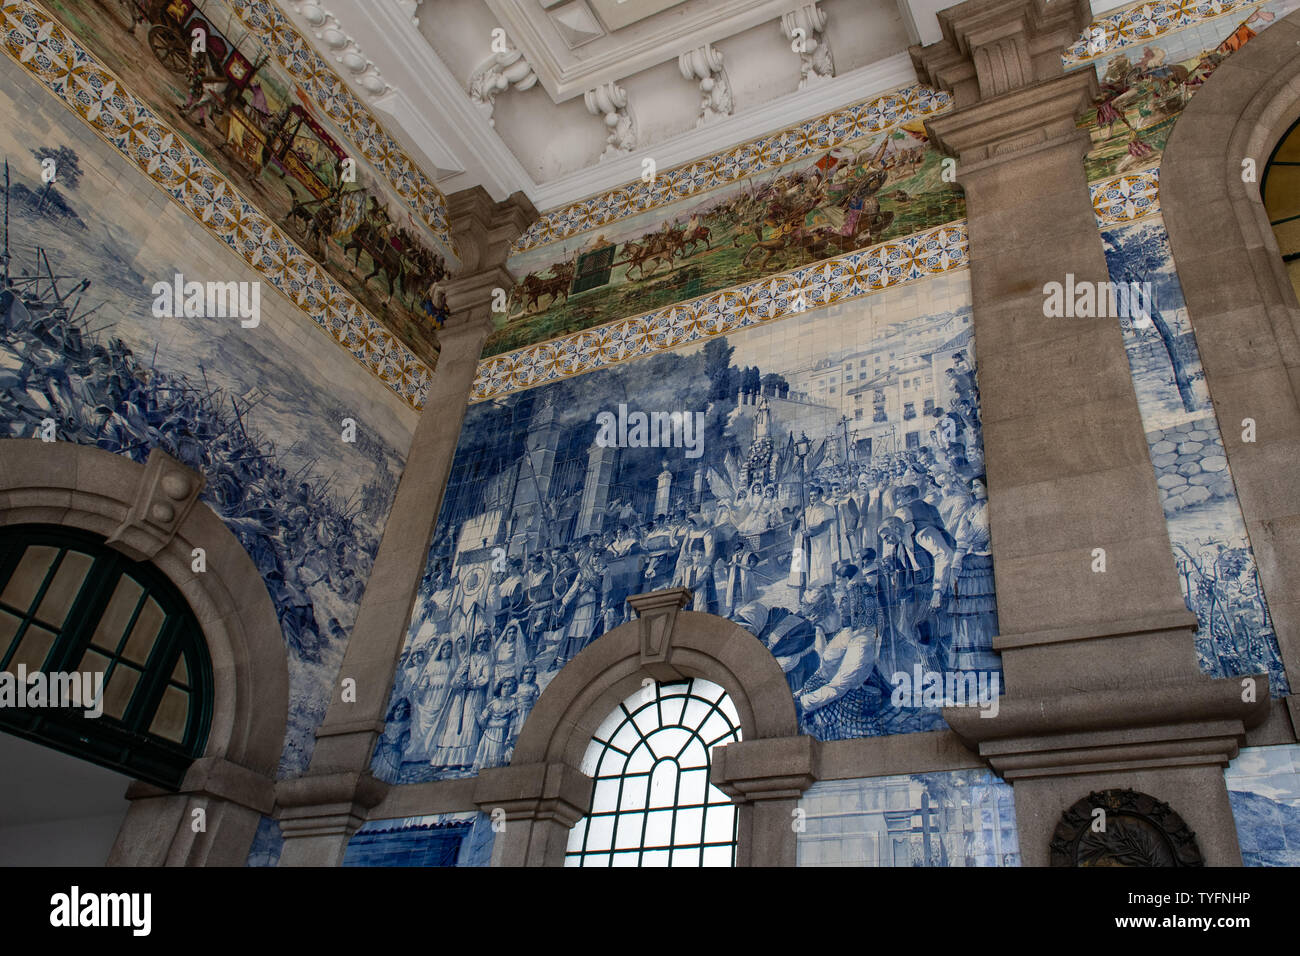 Porto, Portugal - Jun 19th, 2019 - Beautifully decorated azulejos (tiles) inside the Sao Bento train station in the city centre. - Stock Image